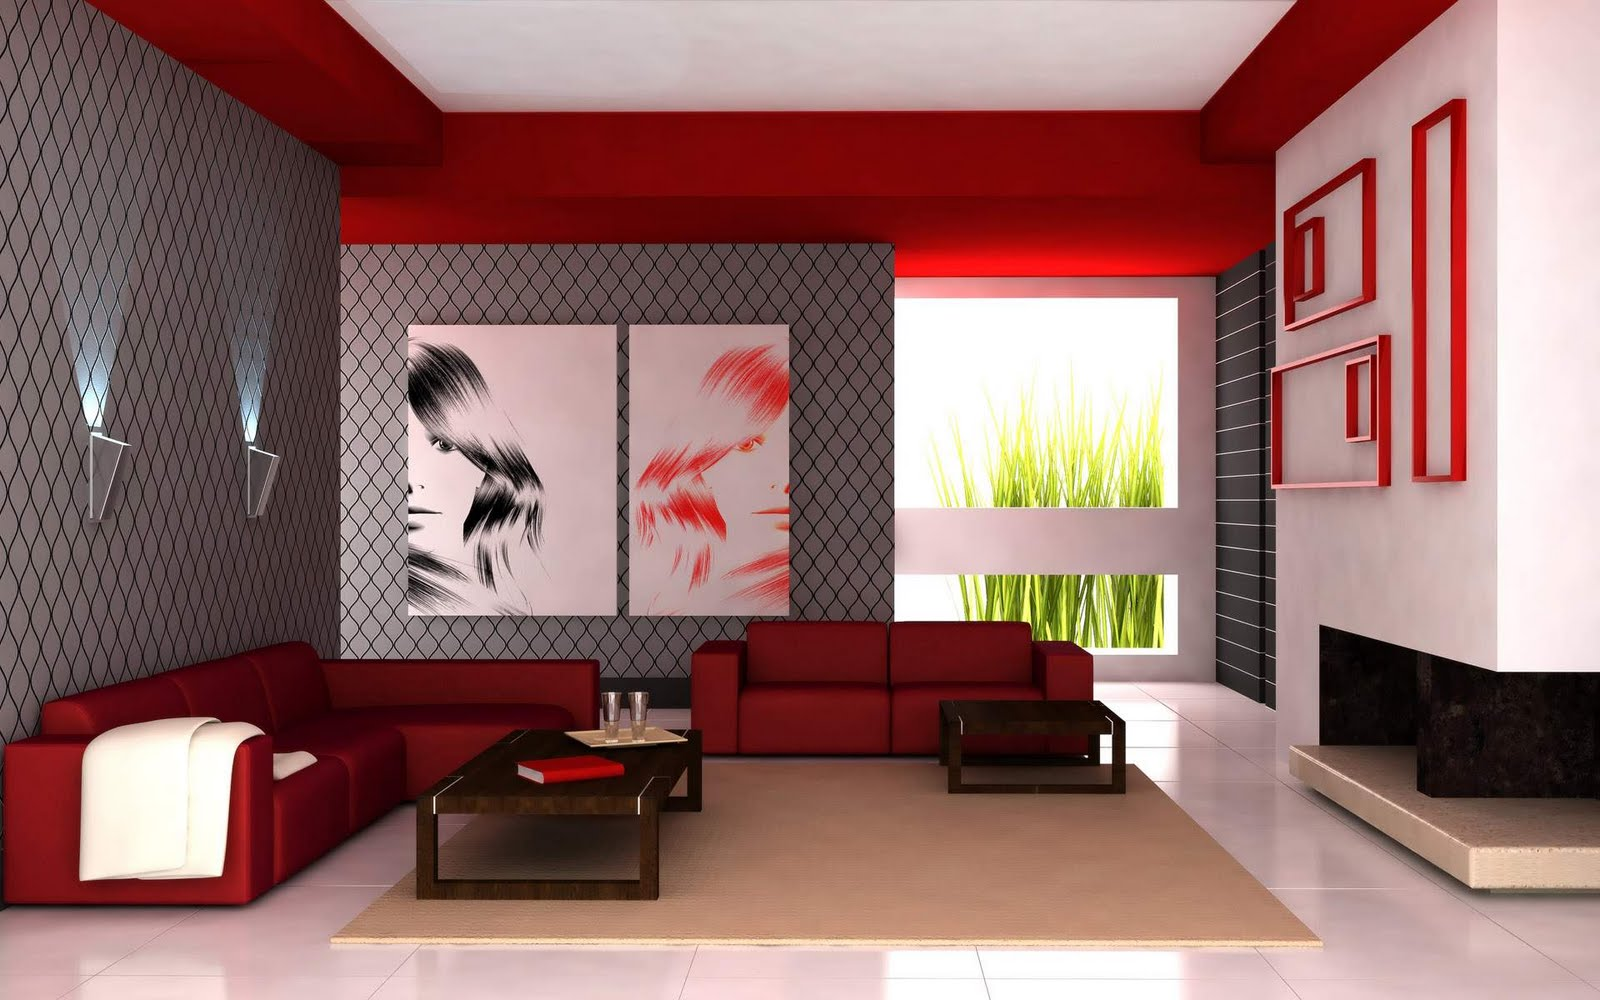 Home Design: Modern Interior Design Ideas and Art